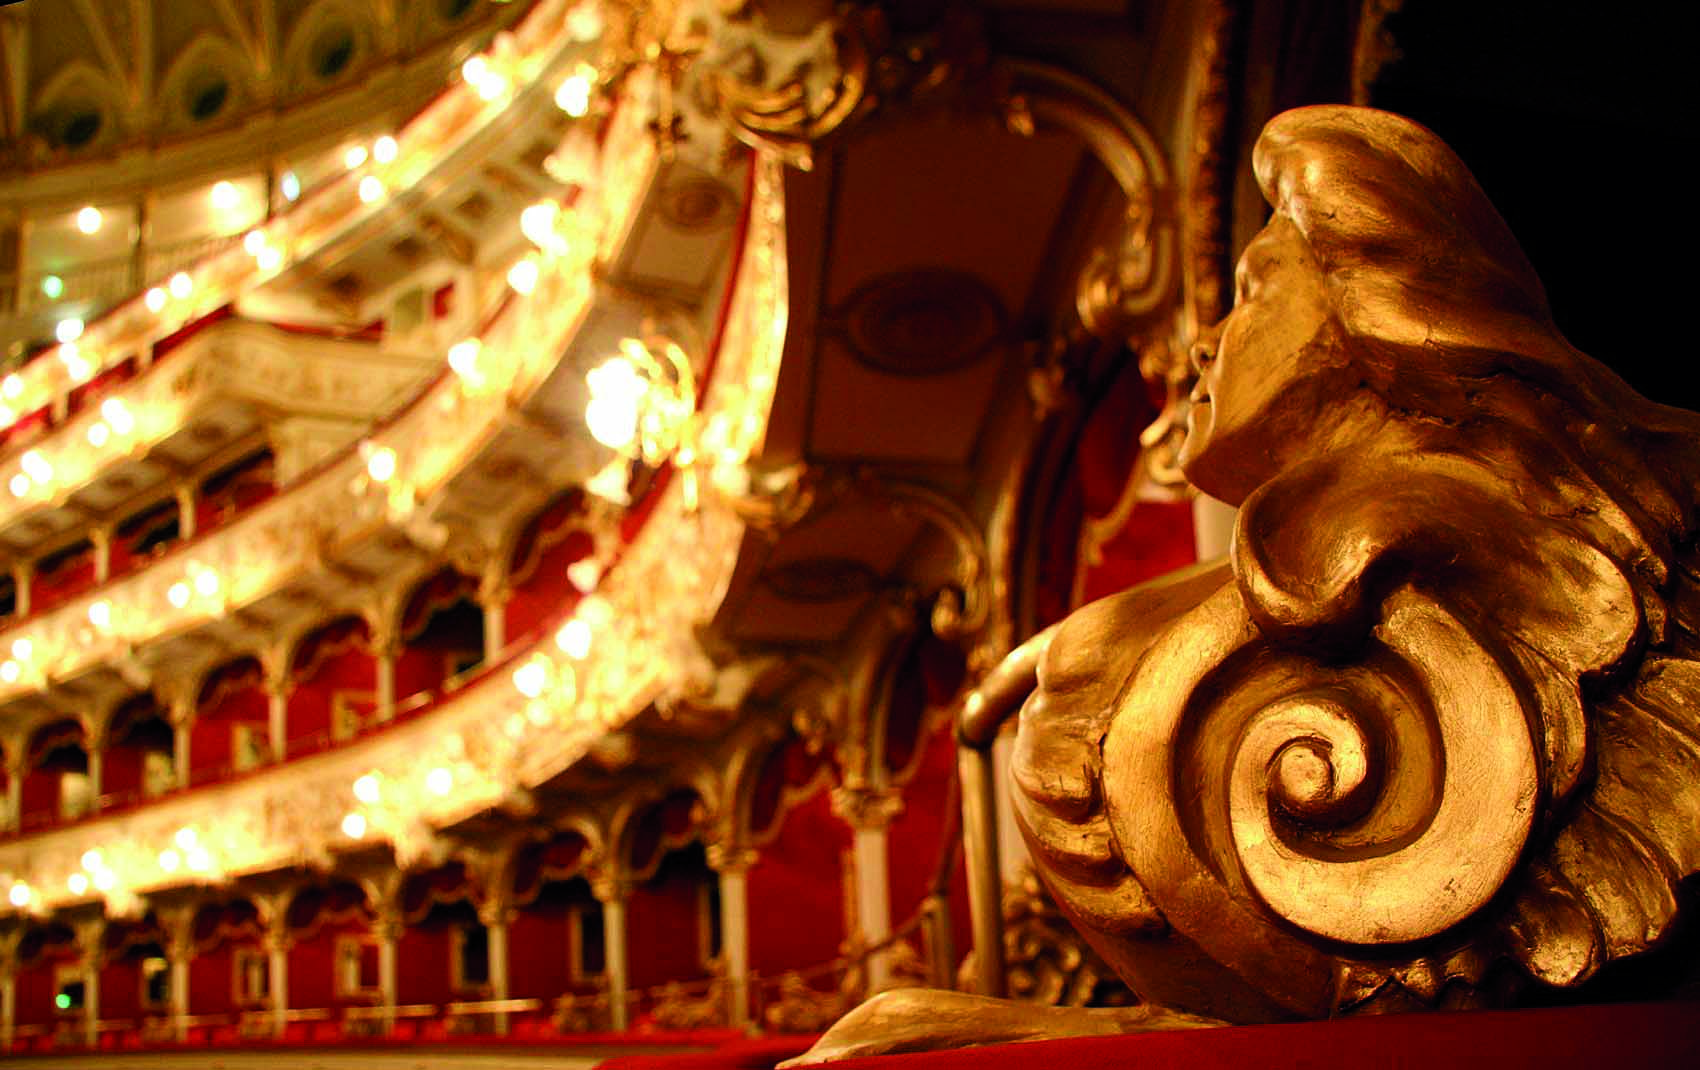 TOUR OF PETRUZZELLI OPERA HOUSE